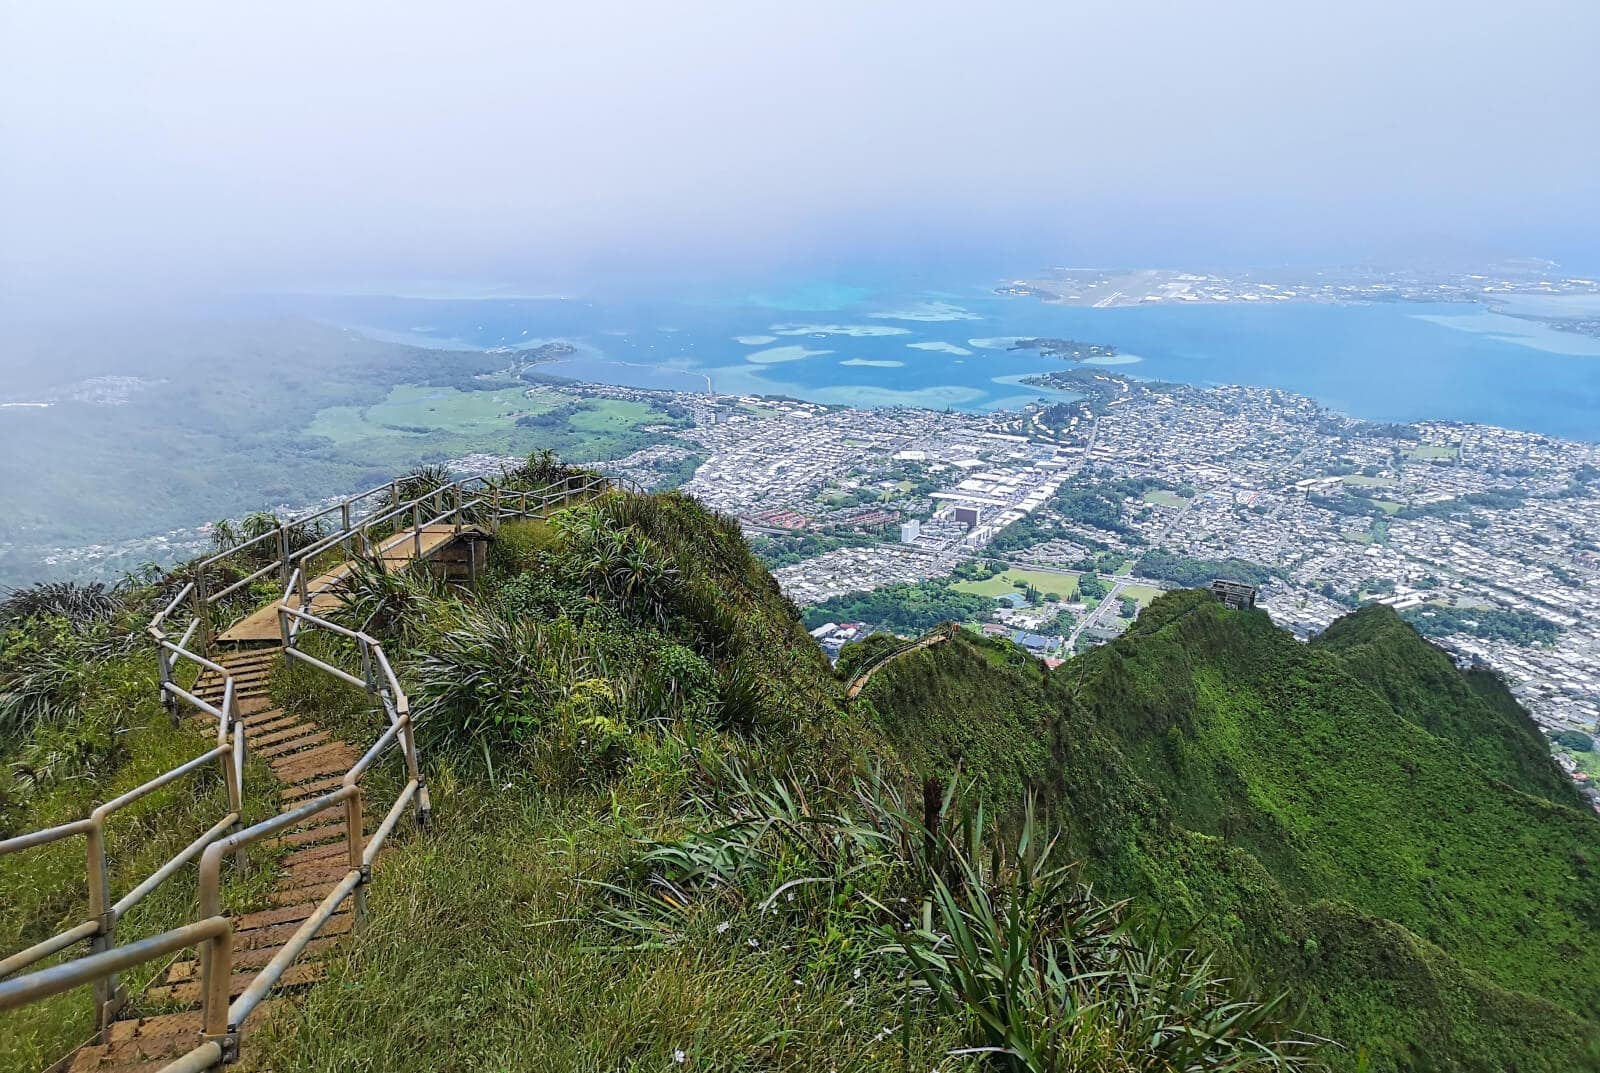 Travel bloggers reveal their favorite experiences in the world - Hiking the Stairway to Heaven on Oahu, Hawaii (the legal way)